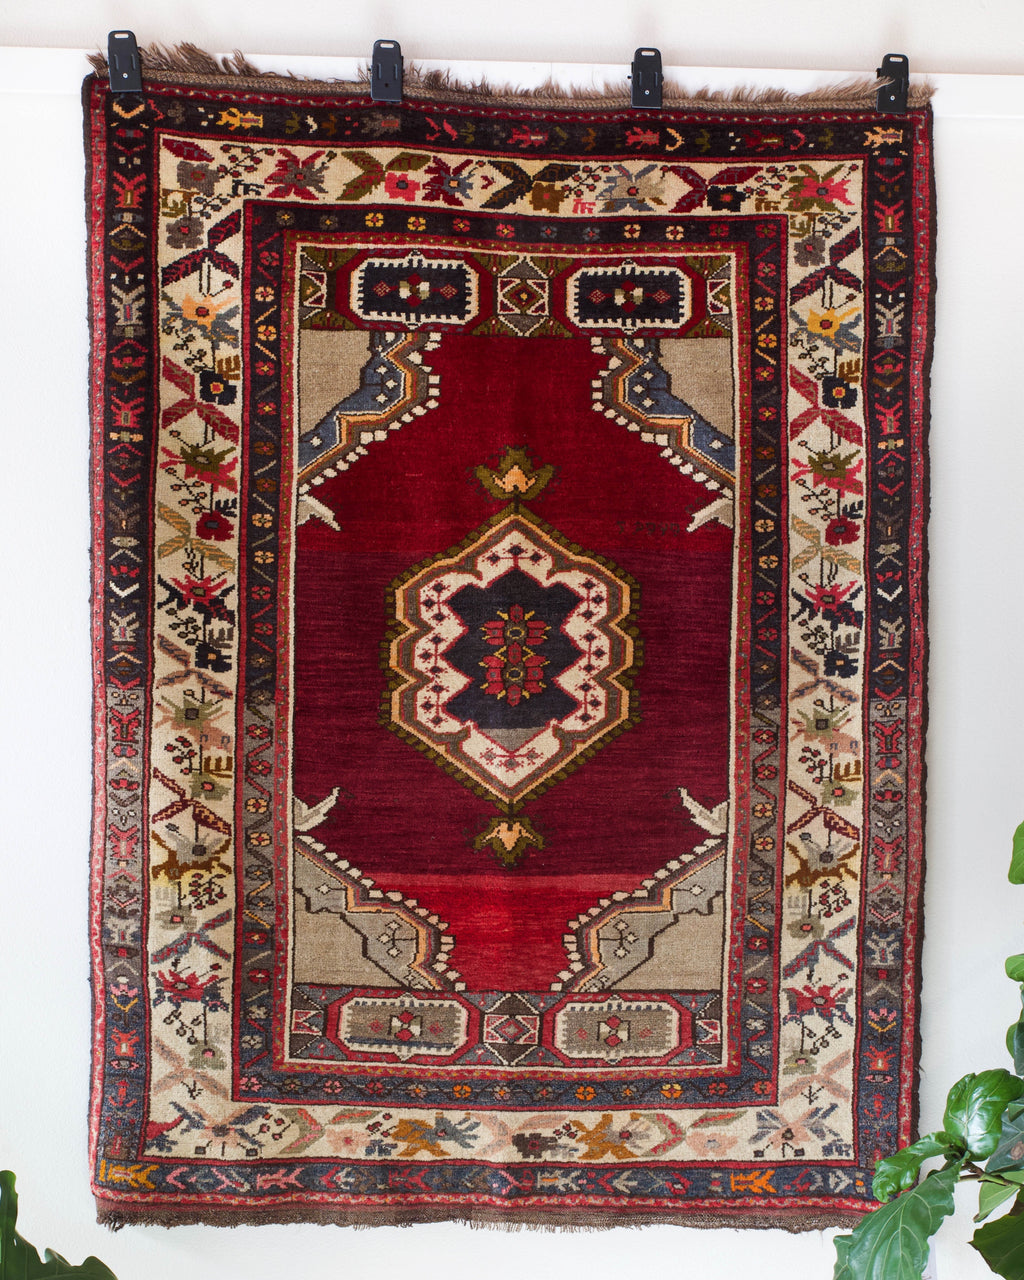 old rug, antique rug, Turkish rug, Portland, Oregon, rug store, rug shop, local shop, bright colors, wild shaman, large rug, area rug, red rug, bold color, burgundy, dark red, soft rug